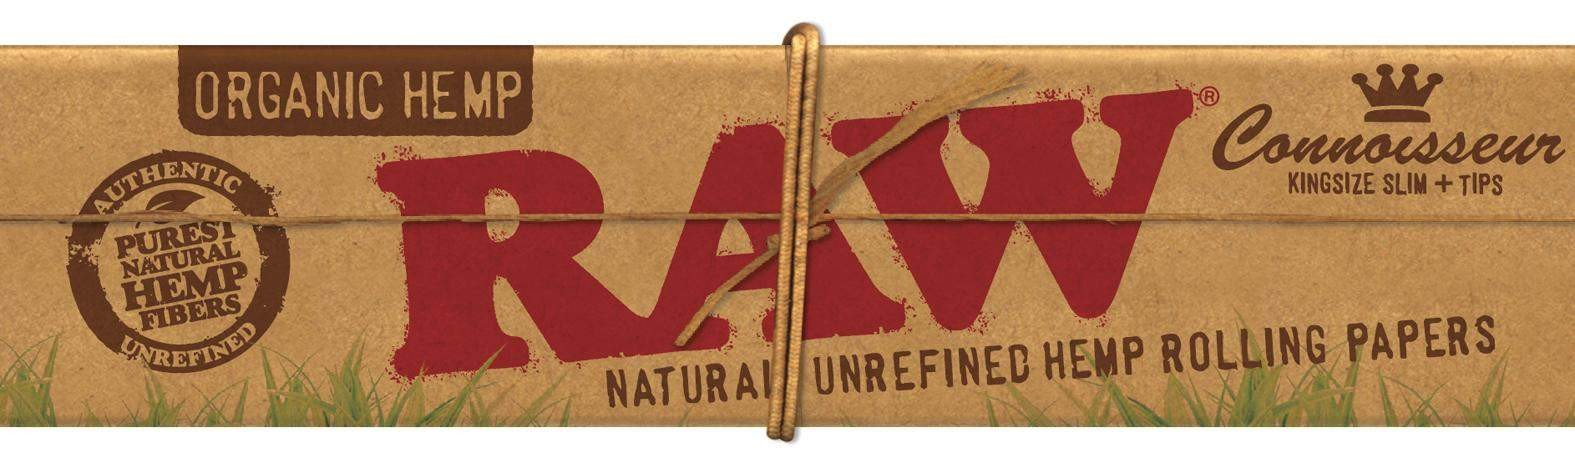 RAW Connoisseur King Size Slim Organic Hemp